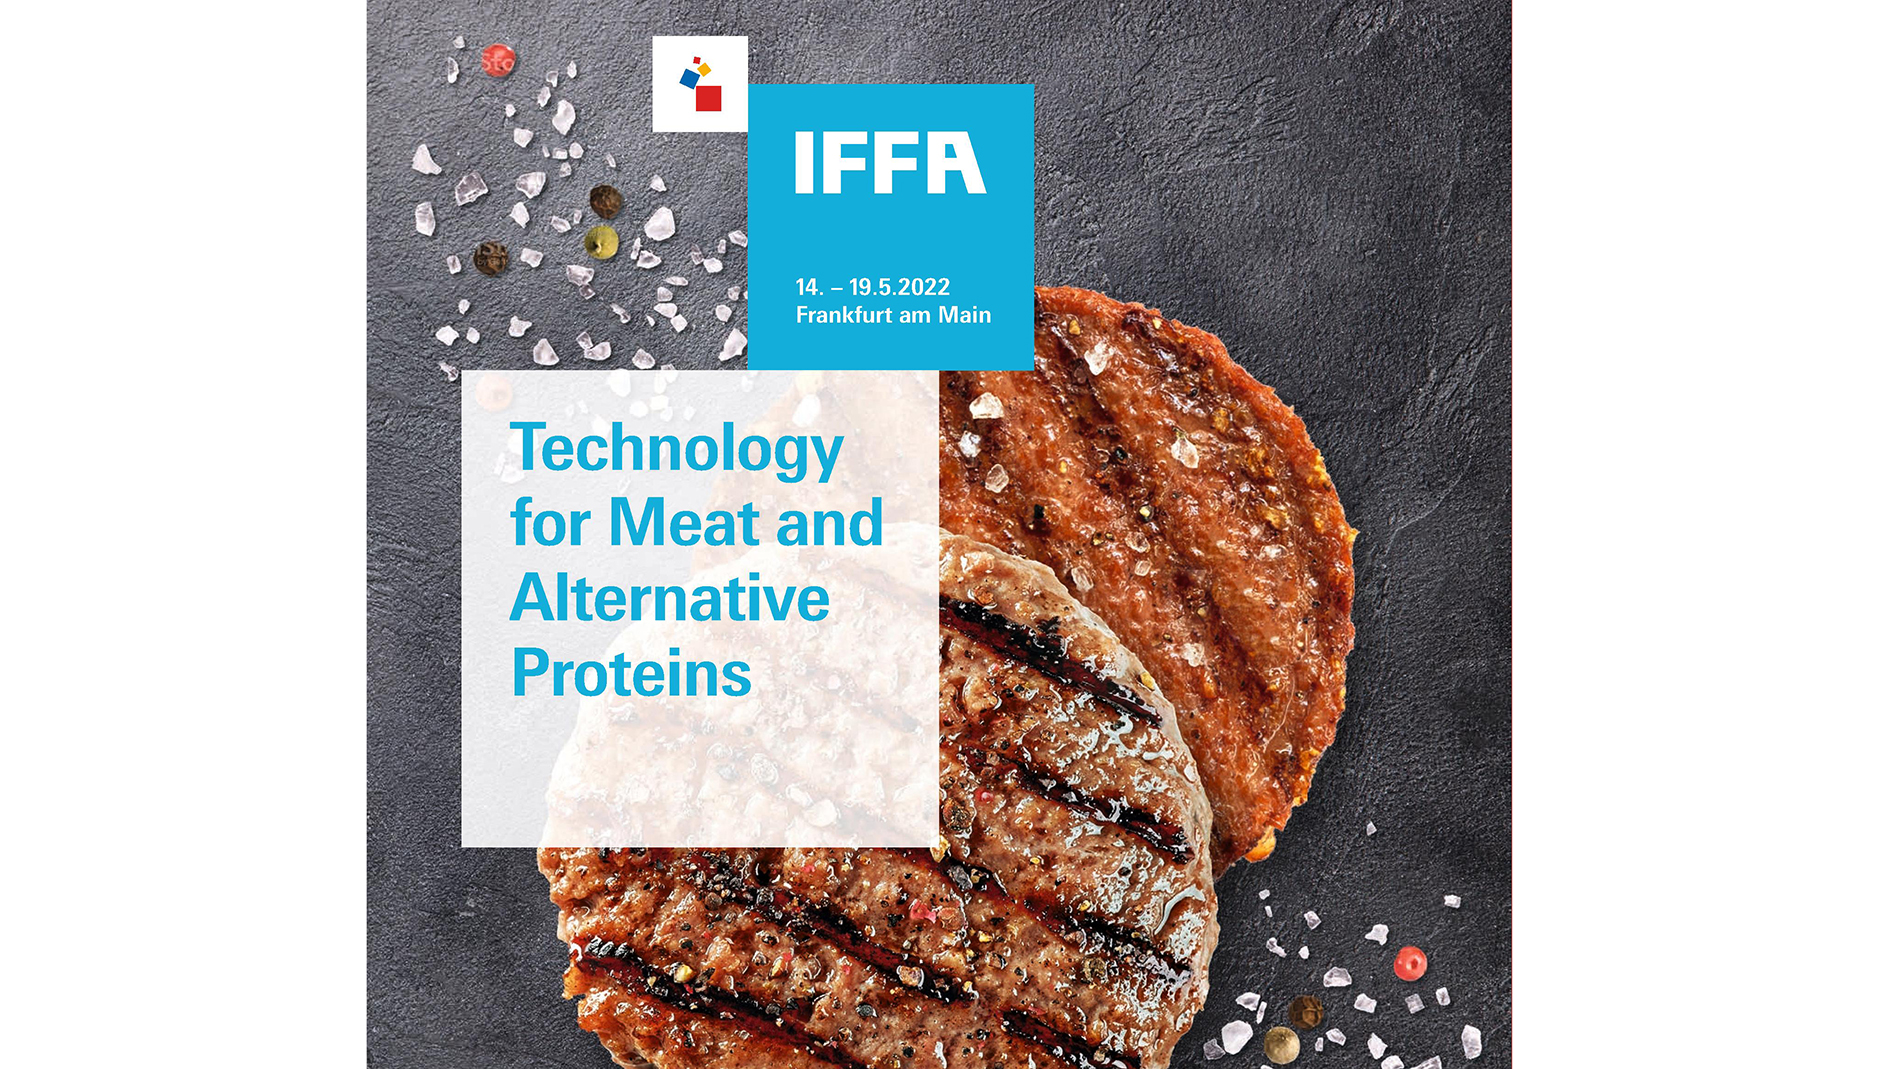 The new key visual for IFFA 2022 (Source: Messe Frankfurt Exhibition GmbH)